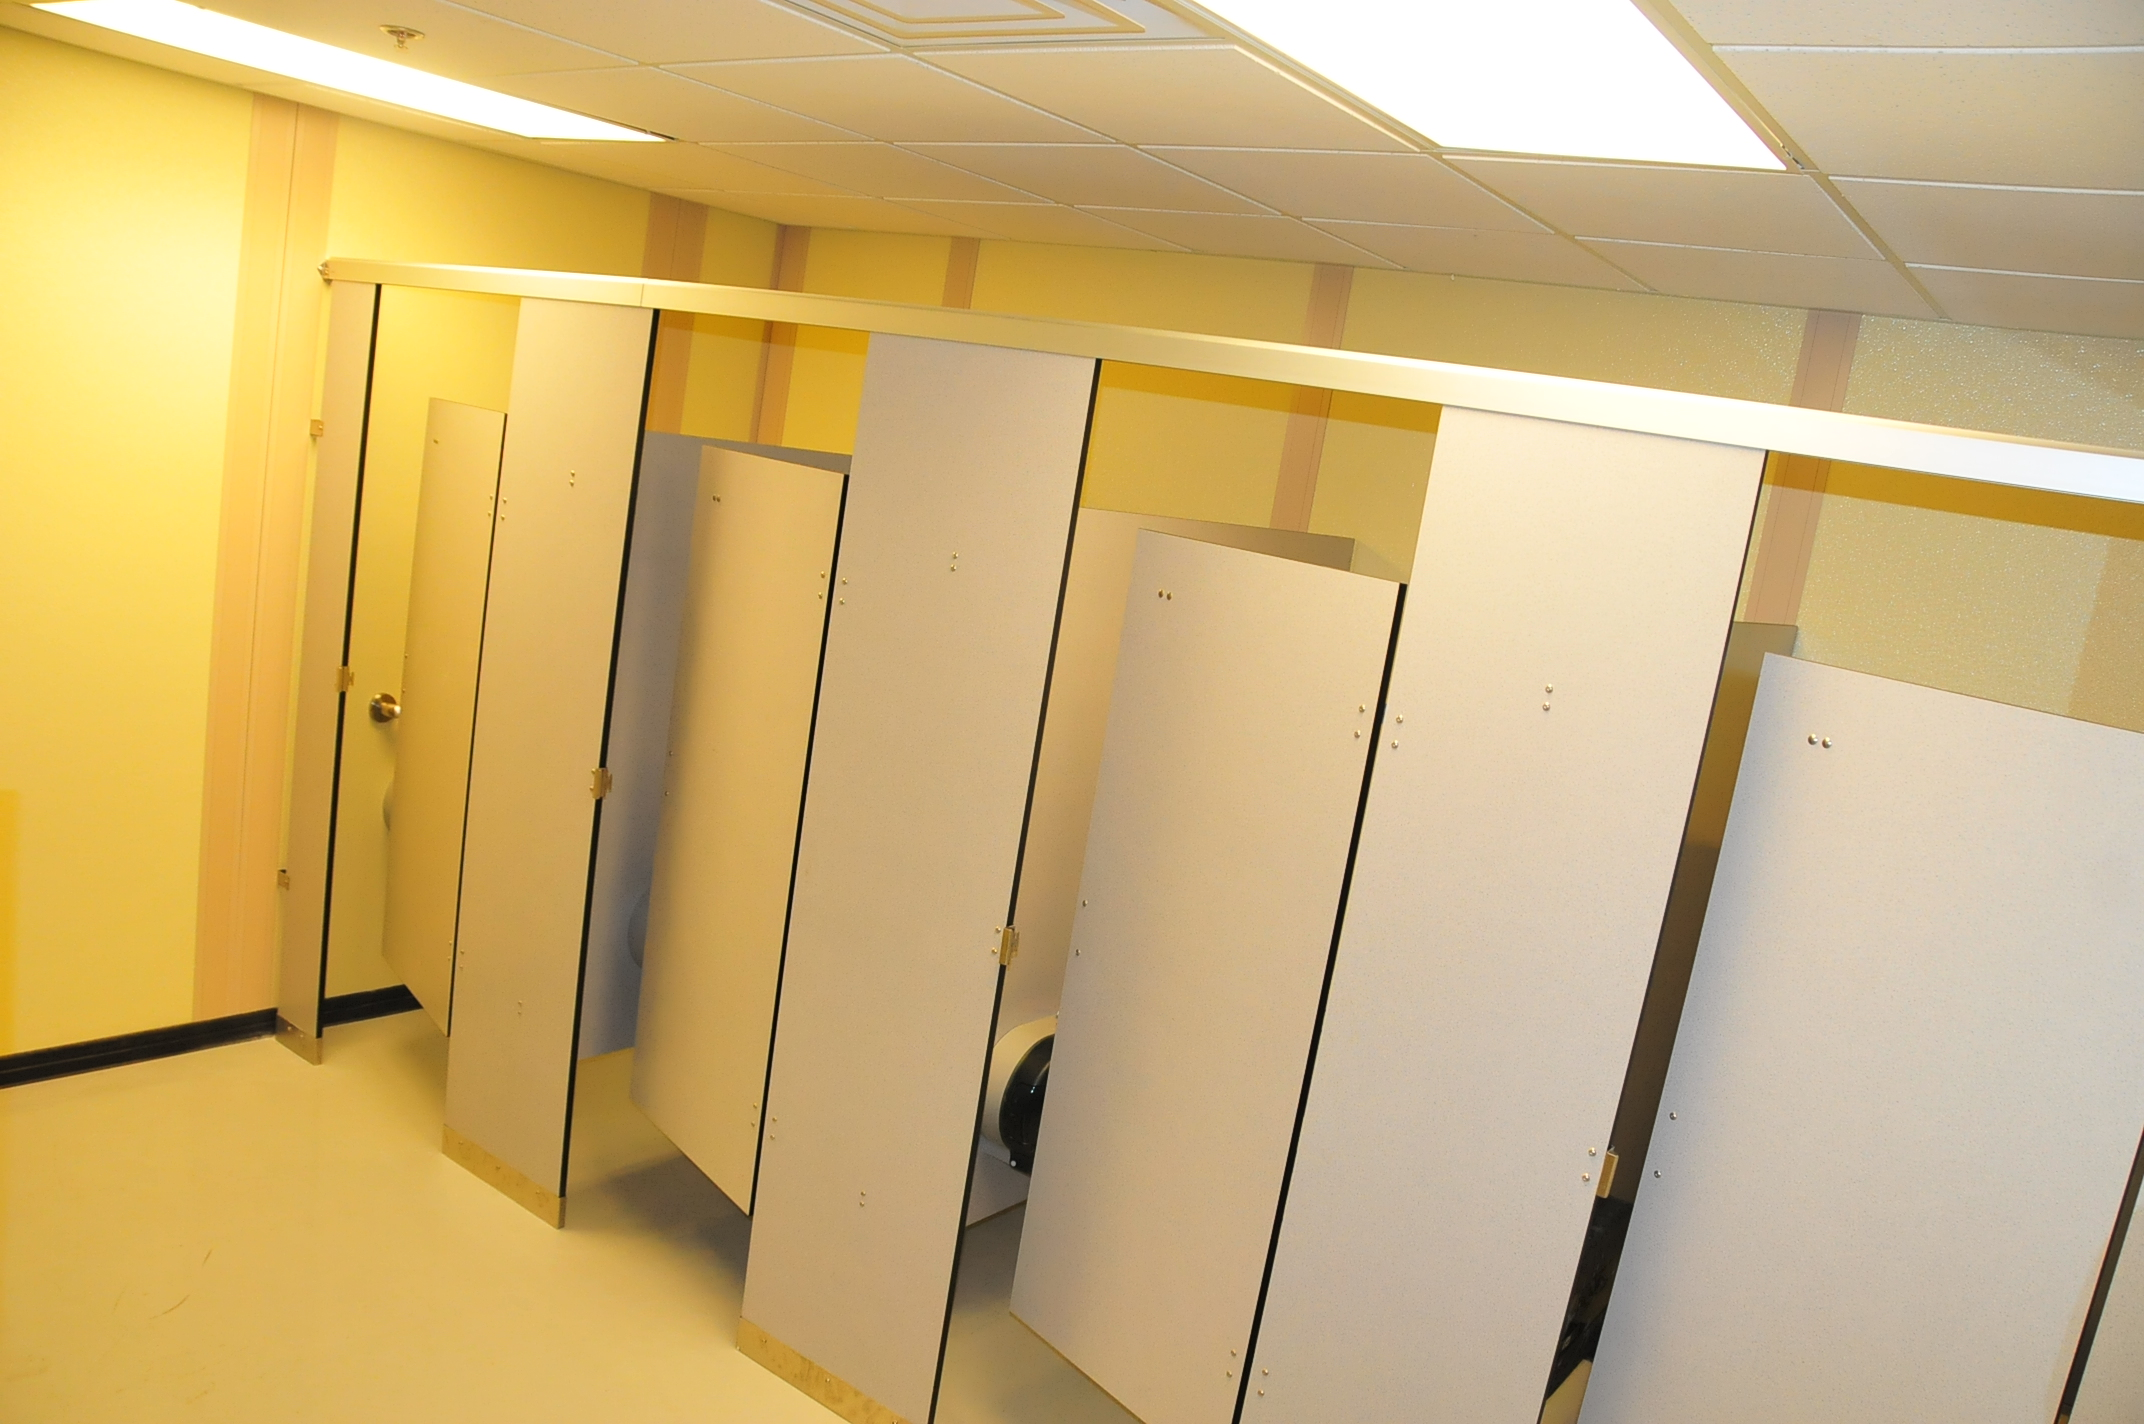 Bathroom Partitions Kent Washington the rembert co., inc. columbia, south carolina, sc 29250